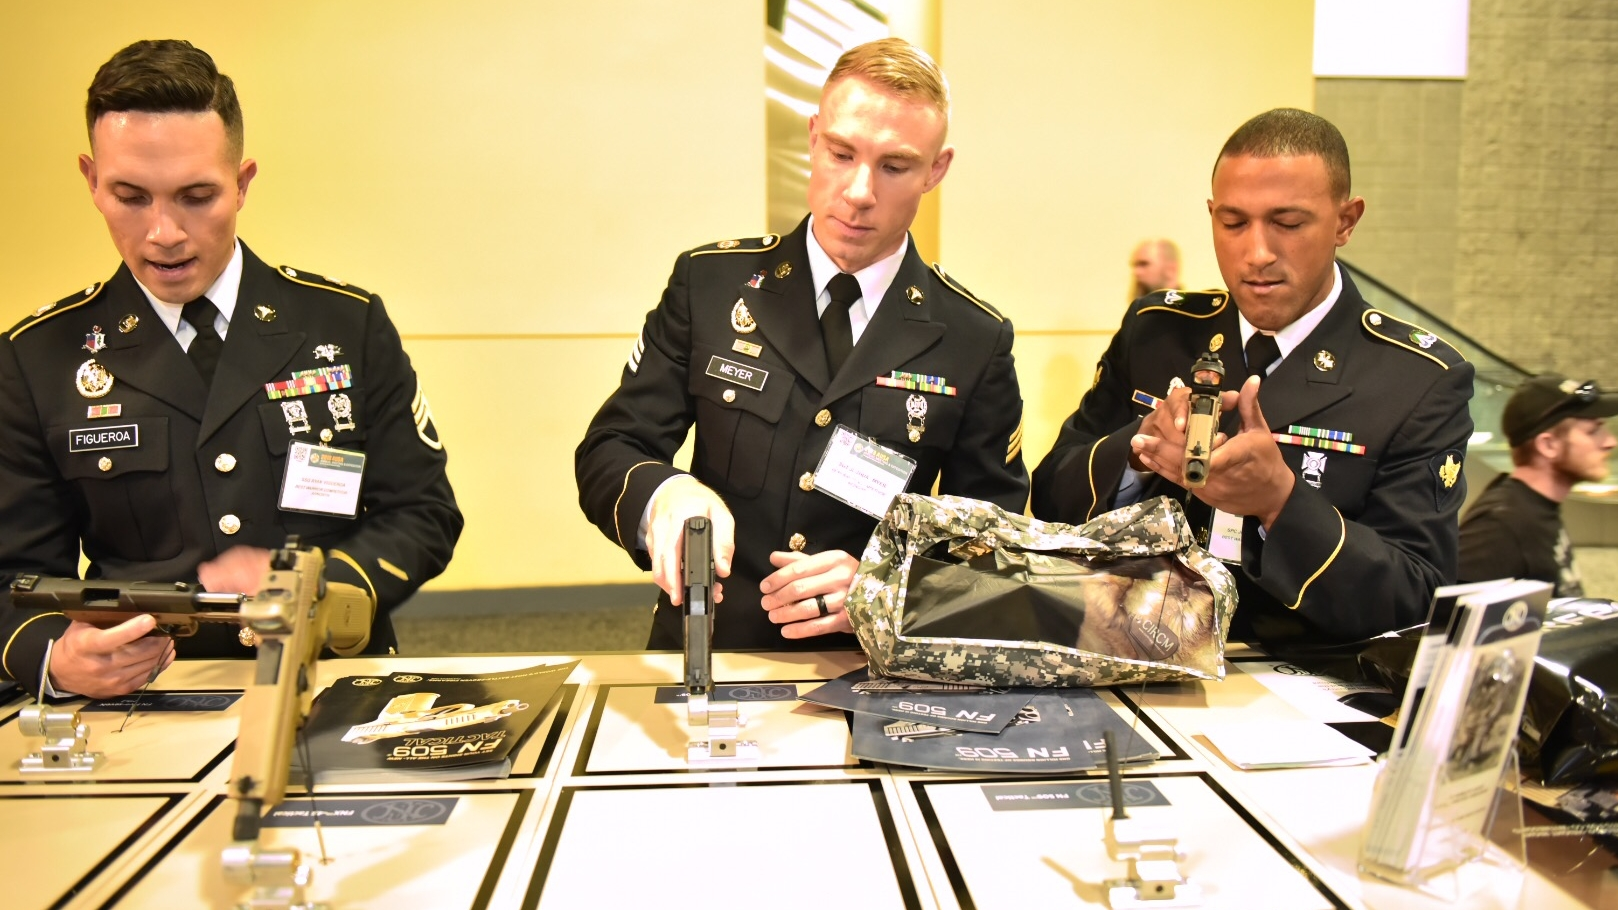 Best warrior competitors Sgt. Joshua Myer SPC Joseph Vazquez, and Staff Sgt. Ryan Figueroa check out FN 509 handguns on display at the 2018 AUSA annual meeting and exposition in Washington, DC. (Stephen Barrett/Special to Defense News & Army Times)